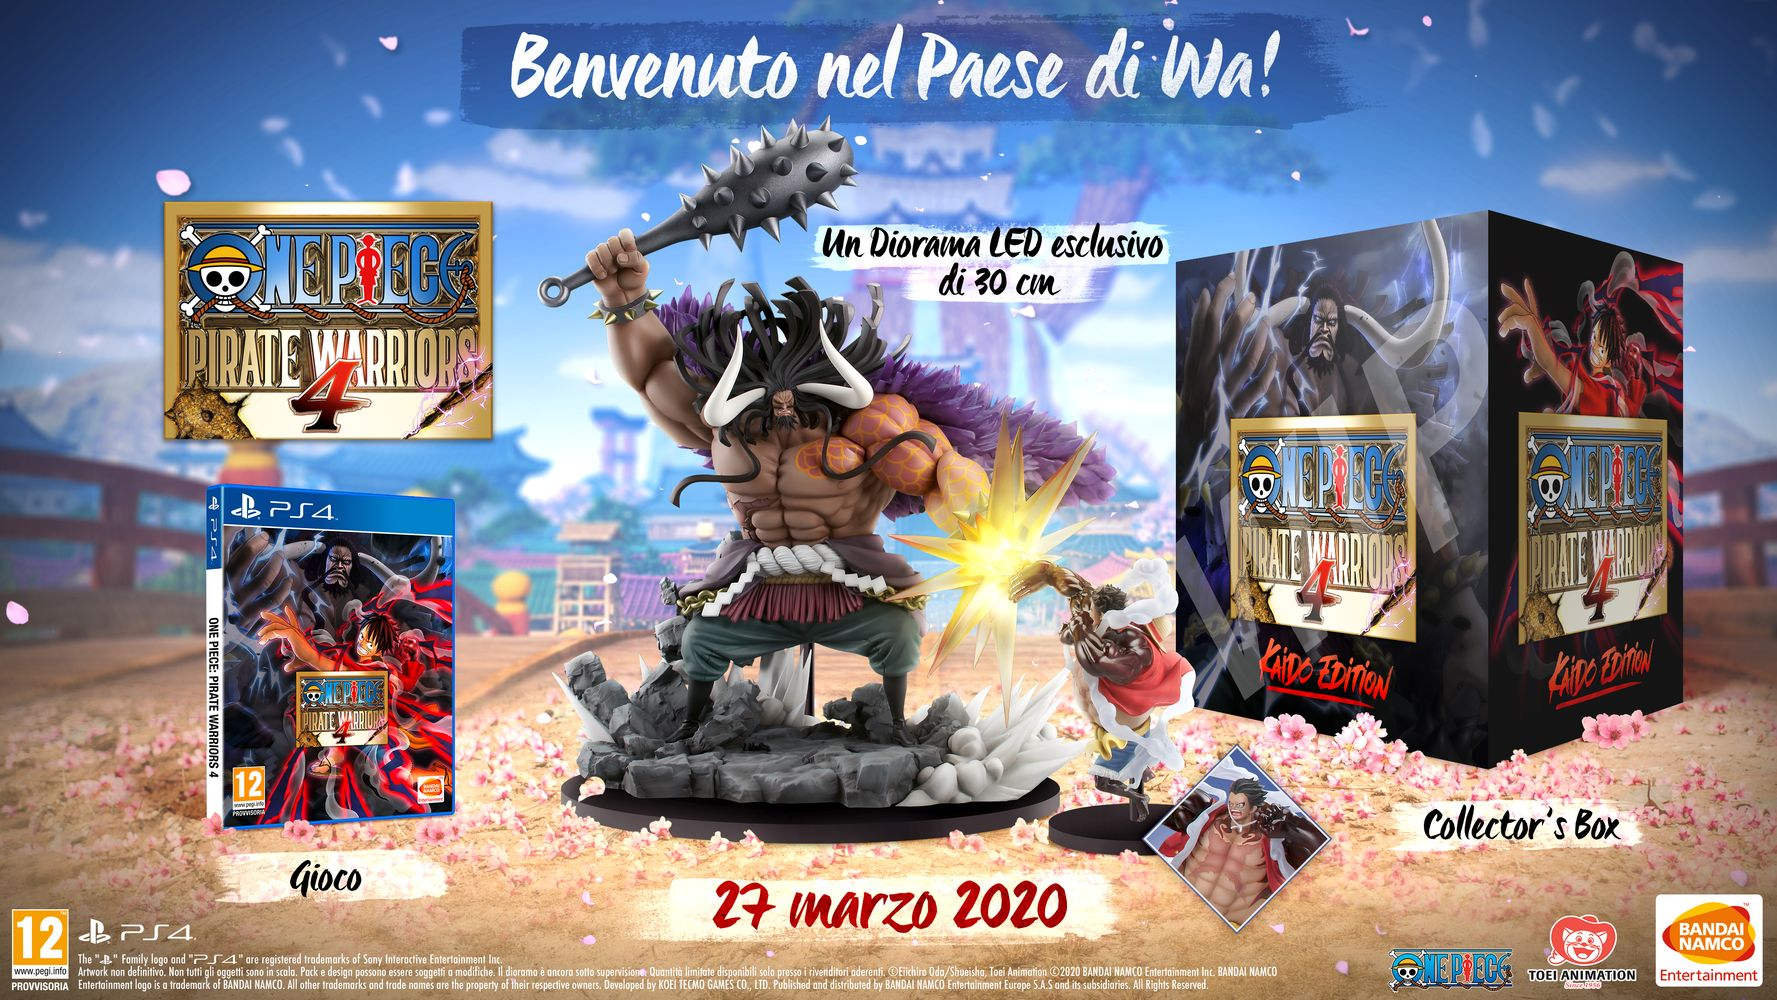 ONE PIECE: PIRATE WARRIORS 4 - Kaido Edition